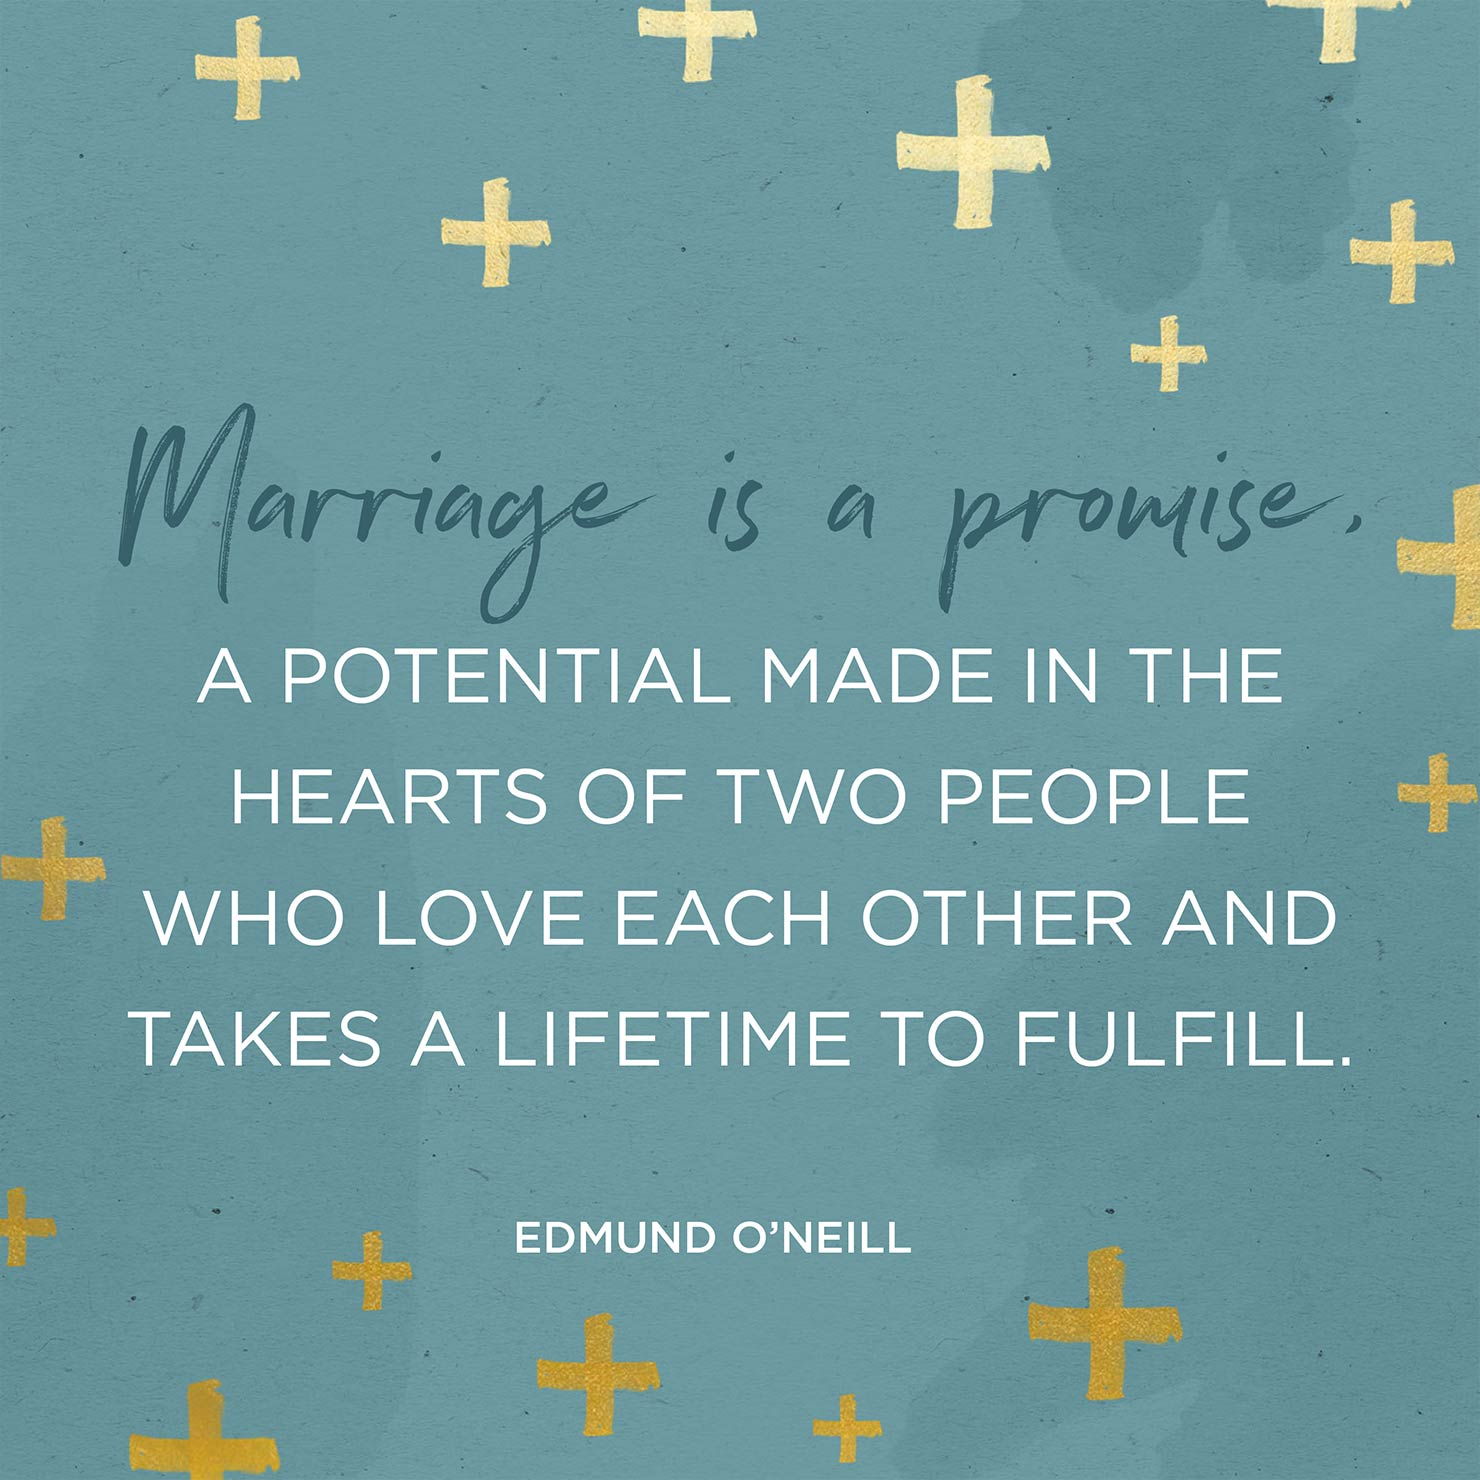 Edmund O Neill marriage quote illustration.